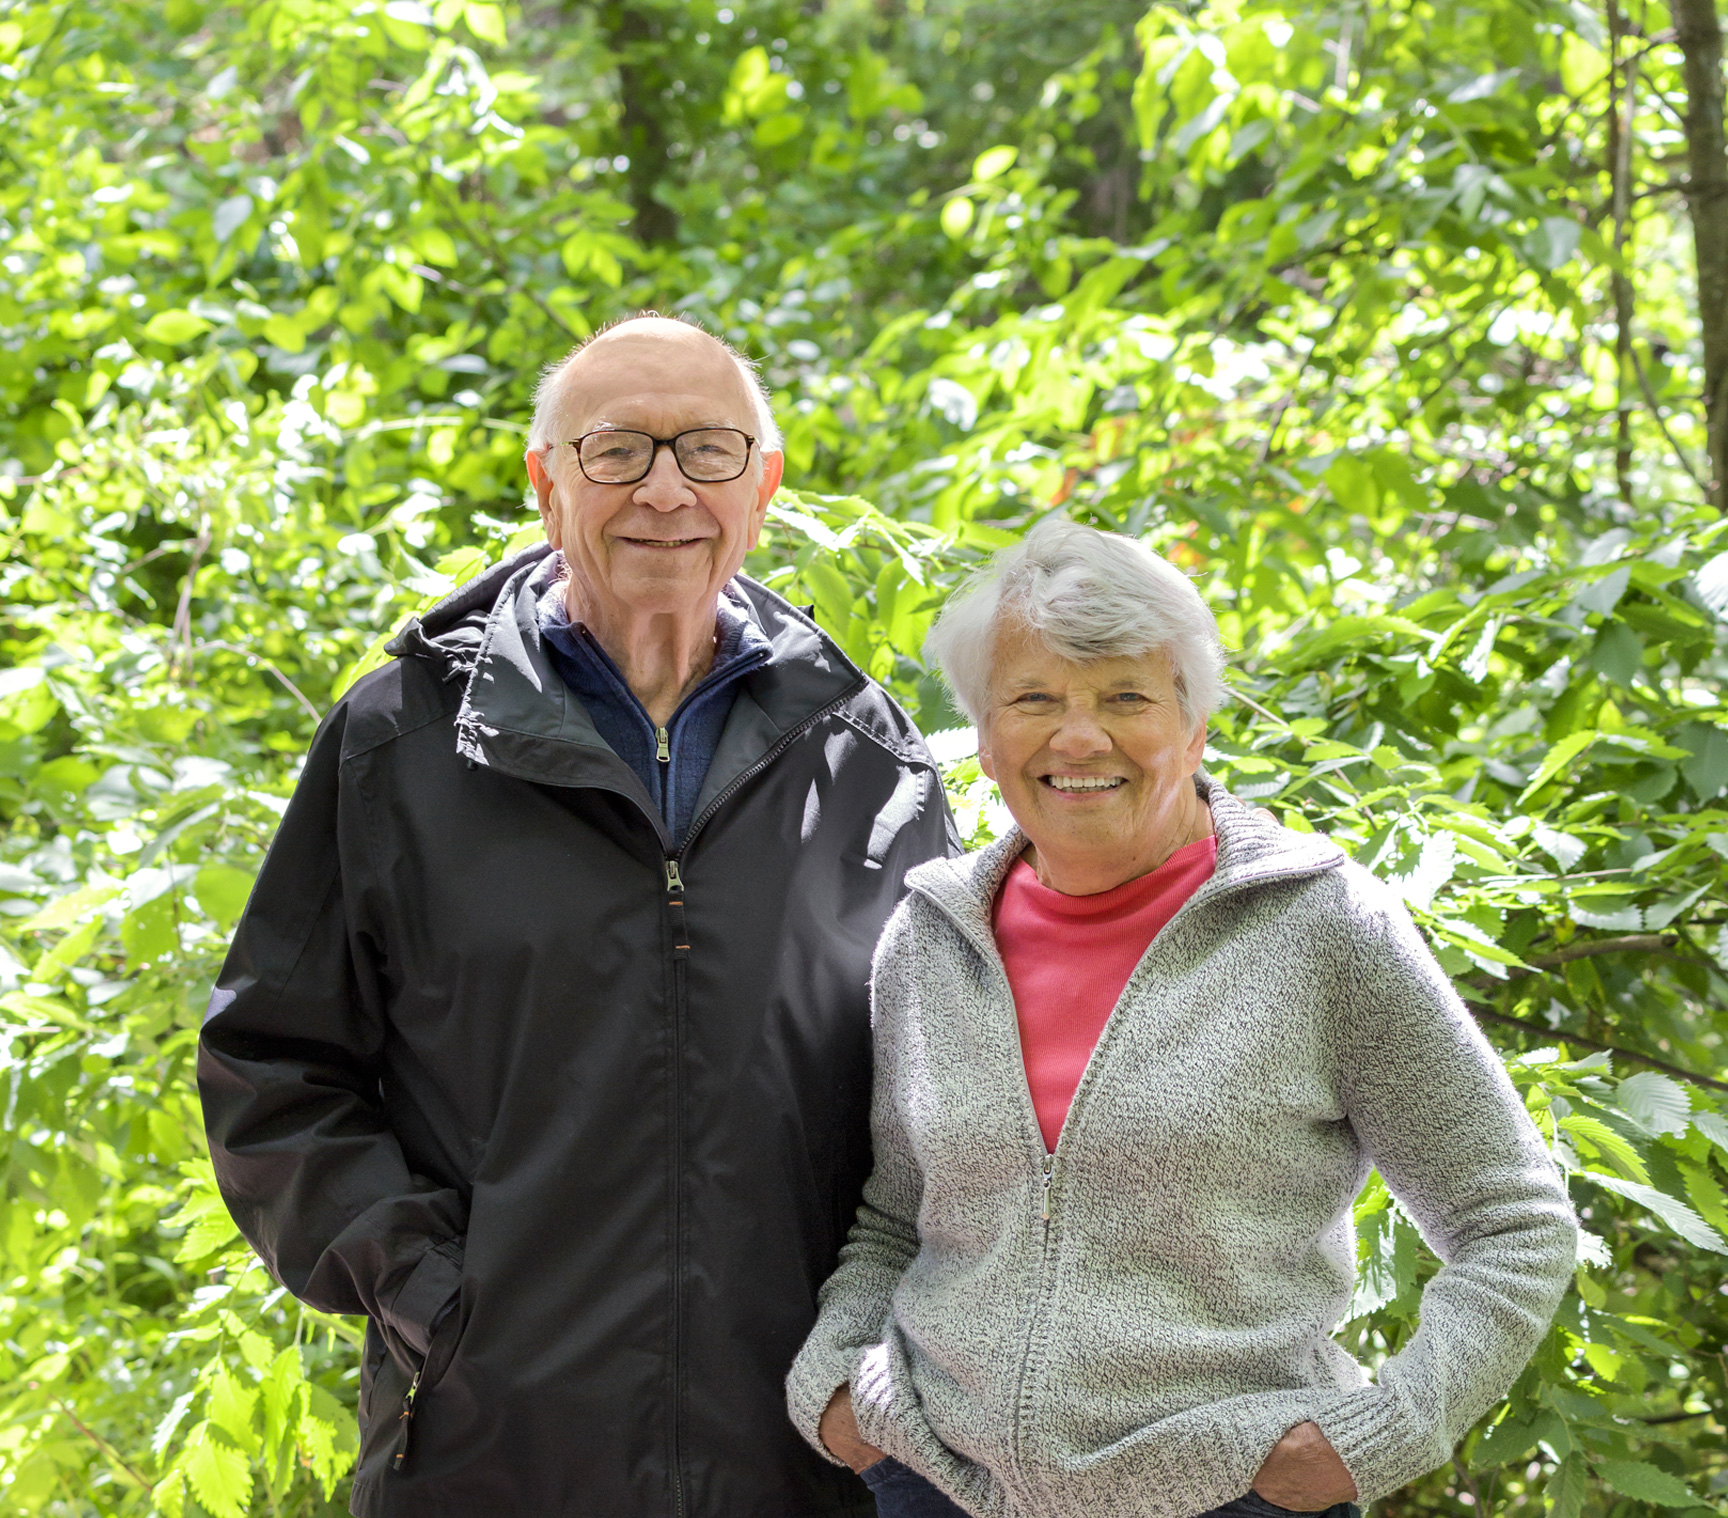 Two Independent Living Residents at RiverWoods Manchester enjoying the walking trails through the woods in Manchester, NH